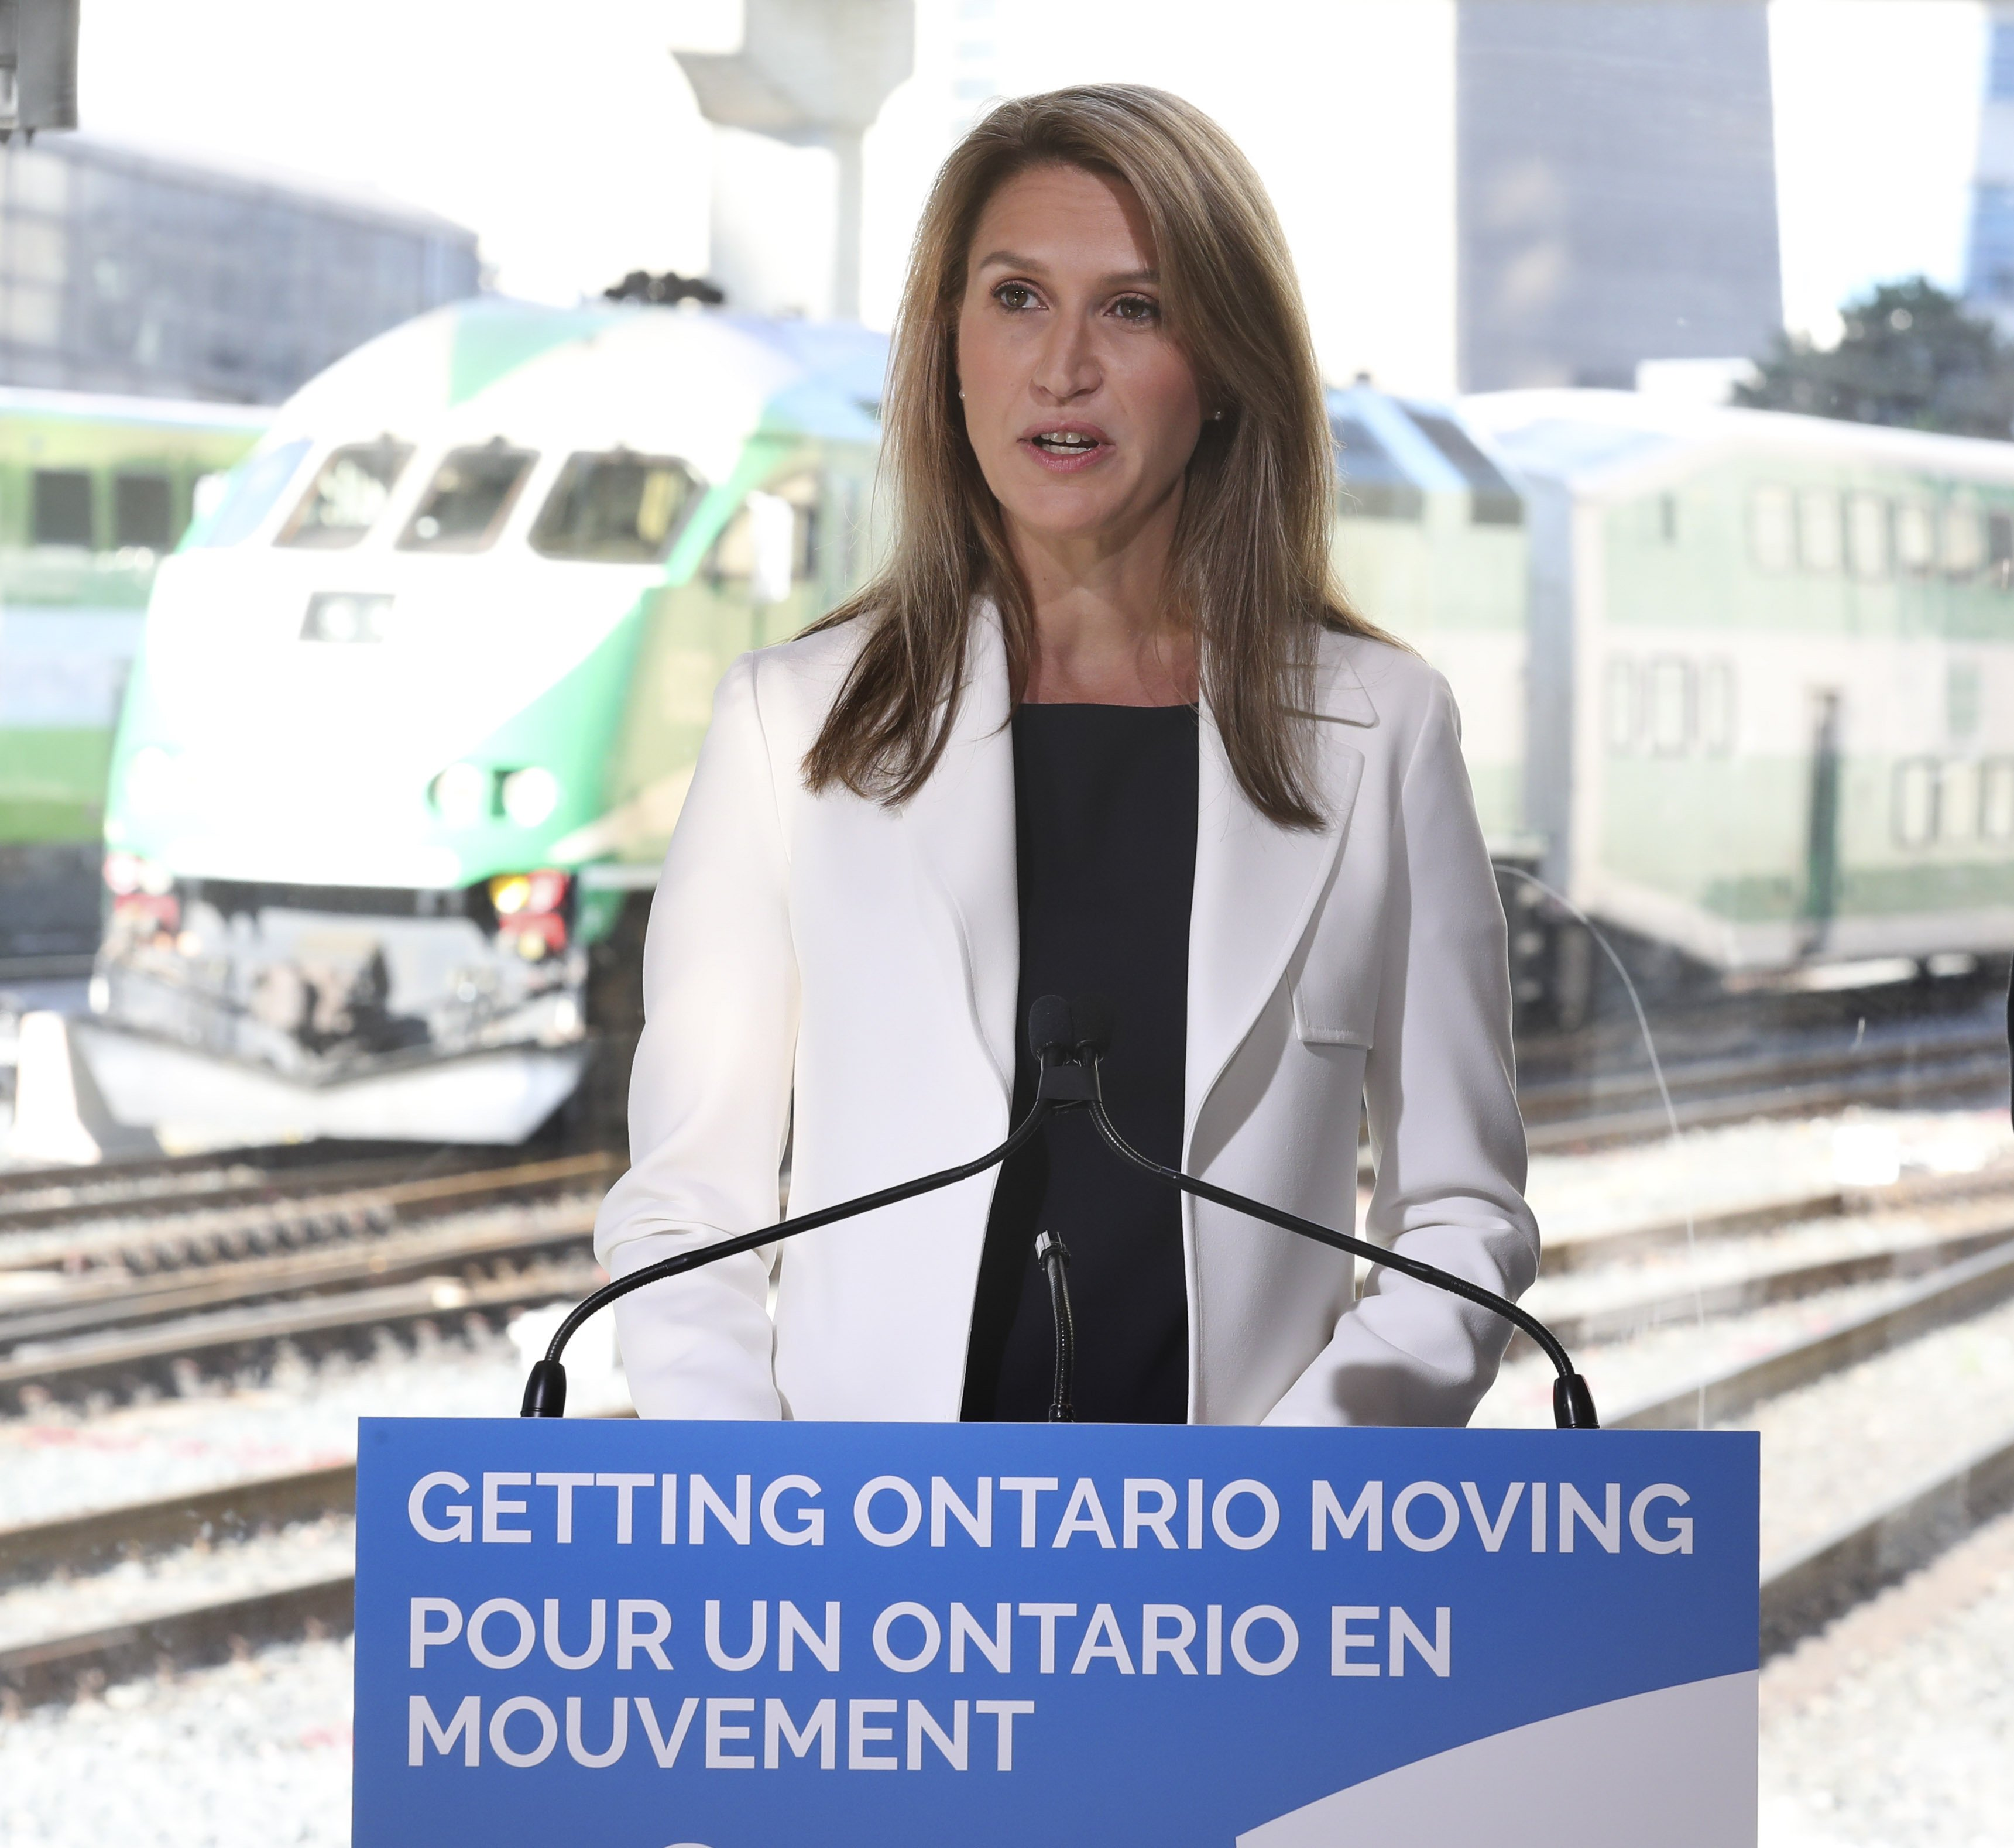 Transportation minister promises to speed up transit projects through changes to development, environmental assessments